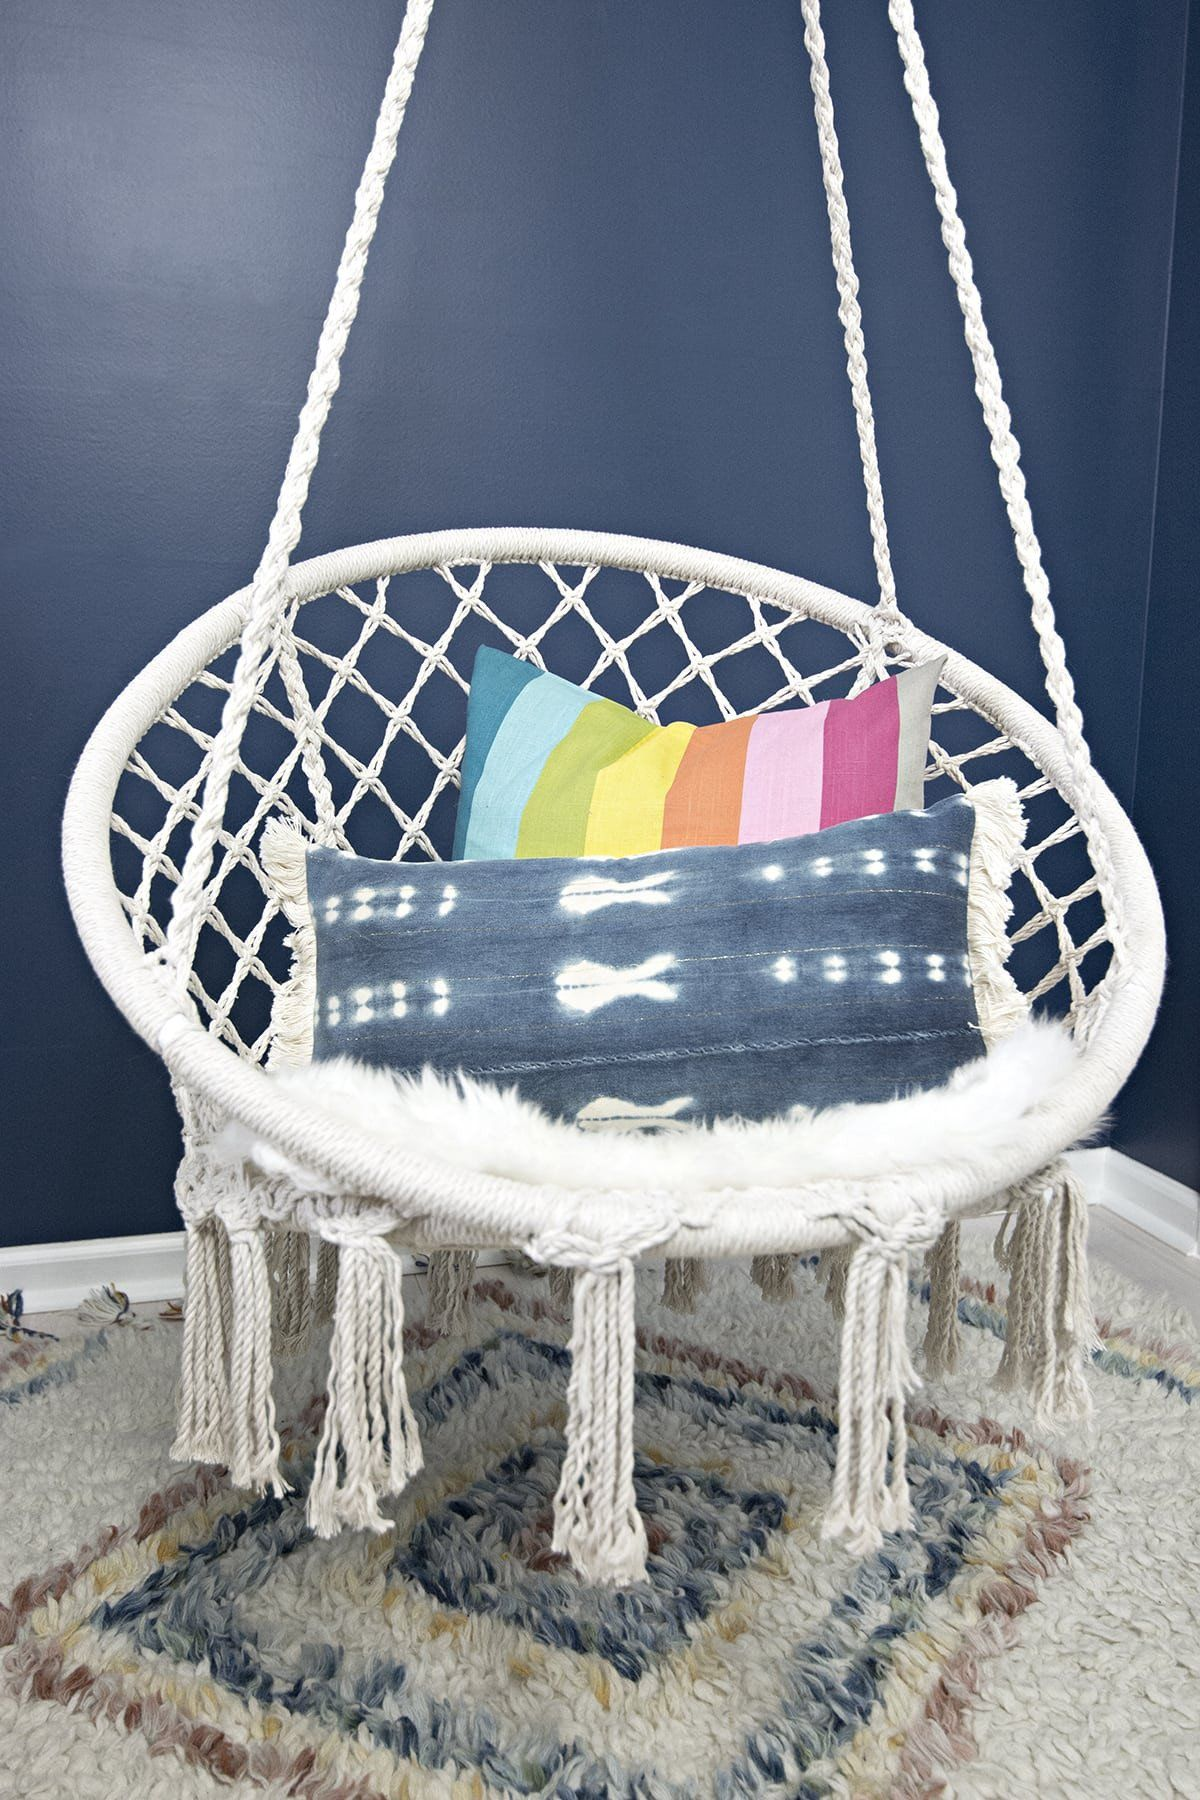 Chair For Girls Bedroom Our New Hanging Macrame Hammock Chair Macrame Hanging Chair Macrame Hammock Chair Hammock Chair